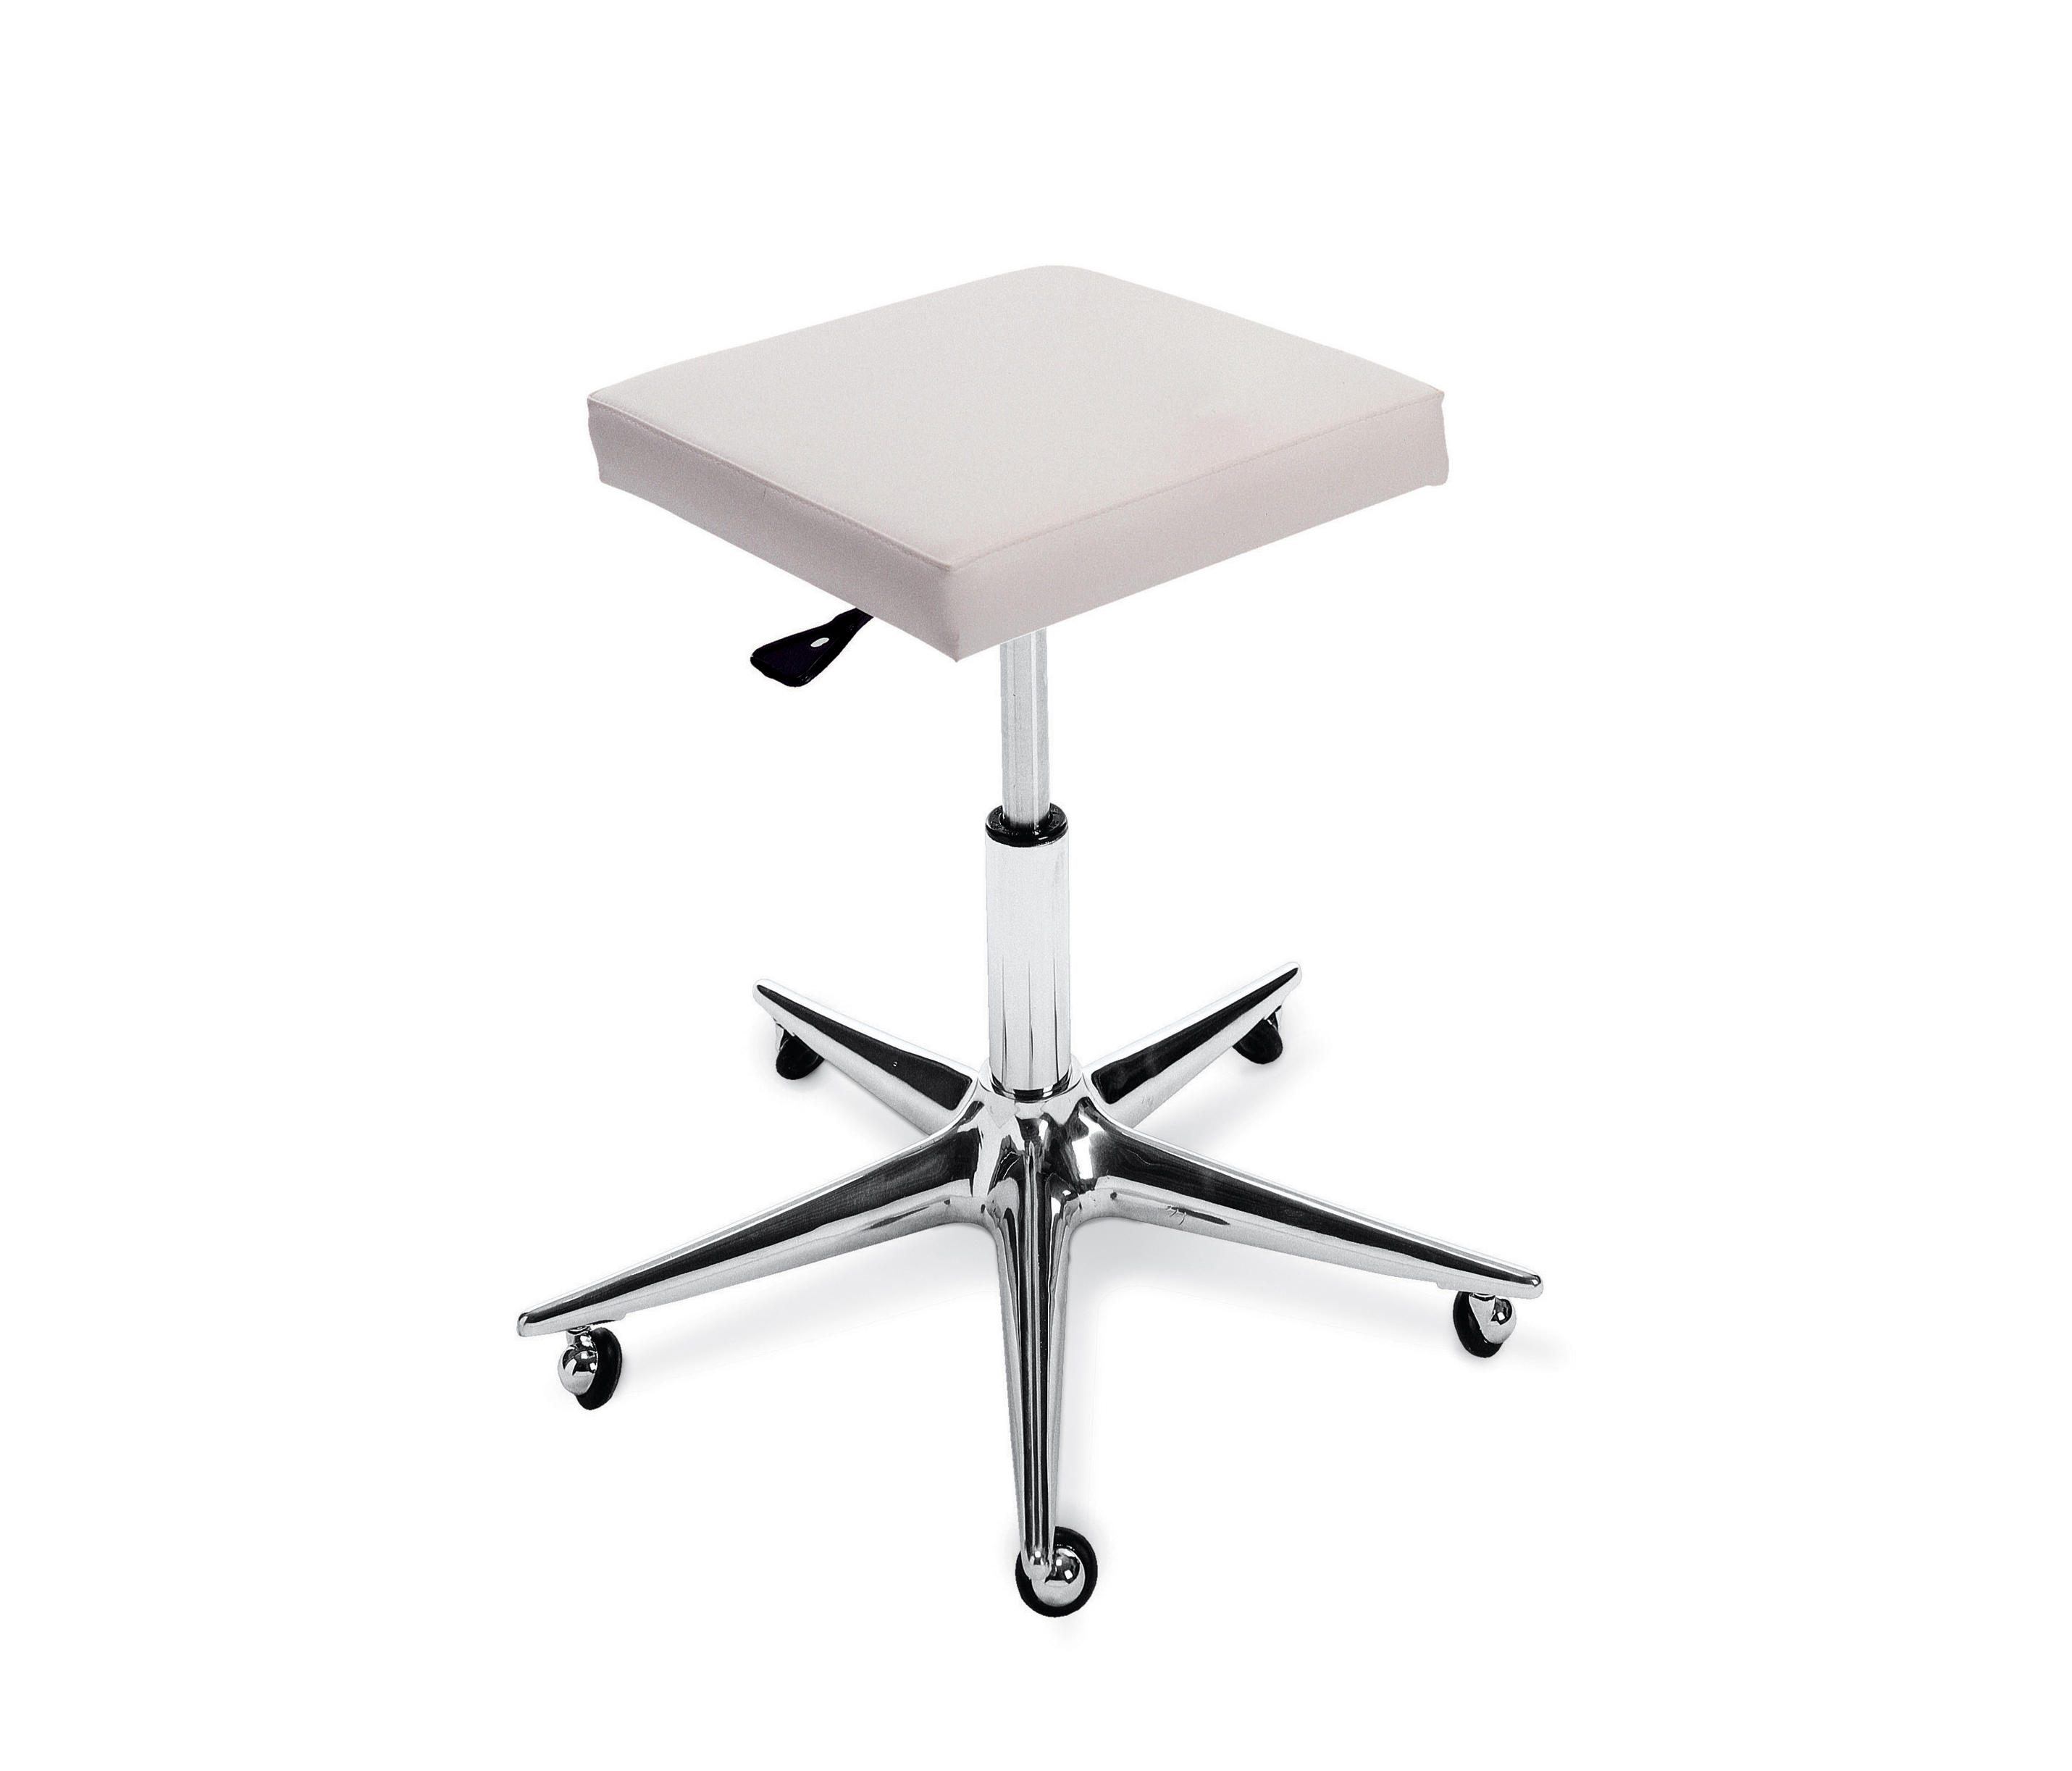 oneida cut gamma state of the art styling stool barber chairs from gamma bross architonic. Black Bedroom Furniture Sets. Home Design Ideas